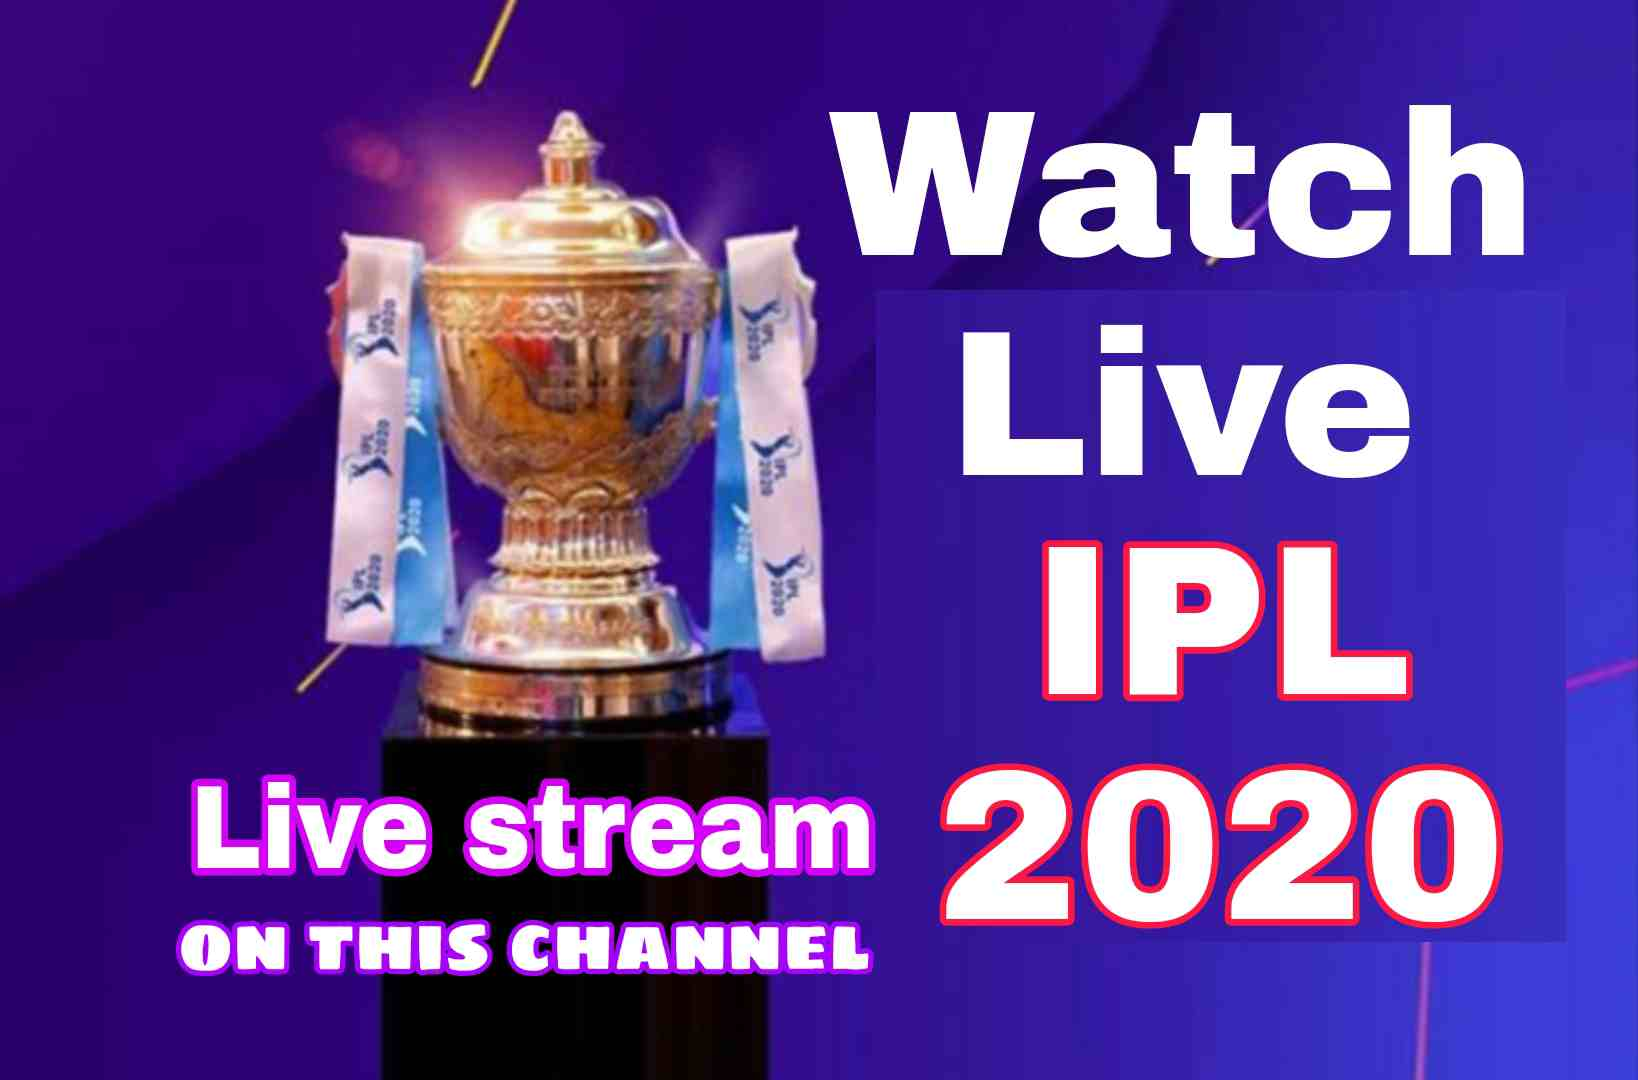 IPL 2020 live telecast channel list